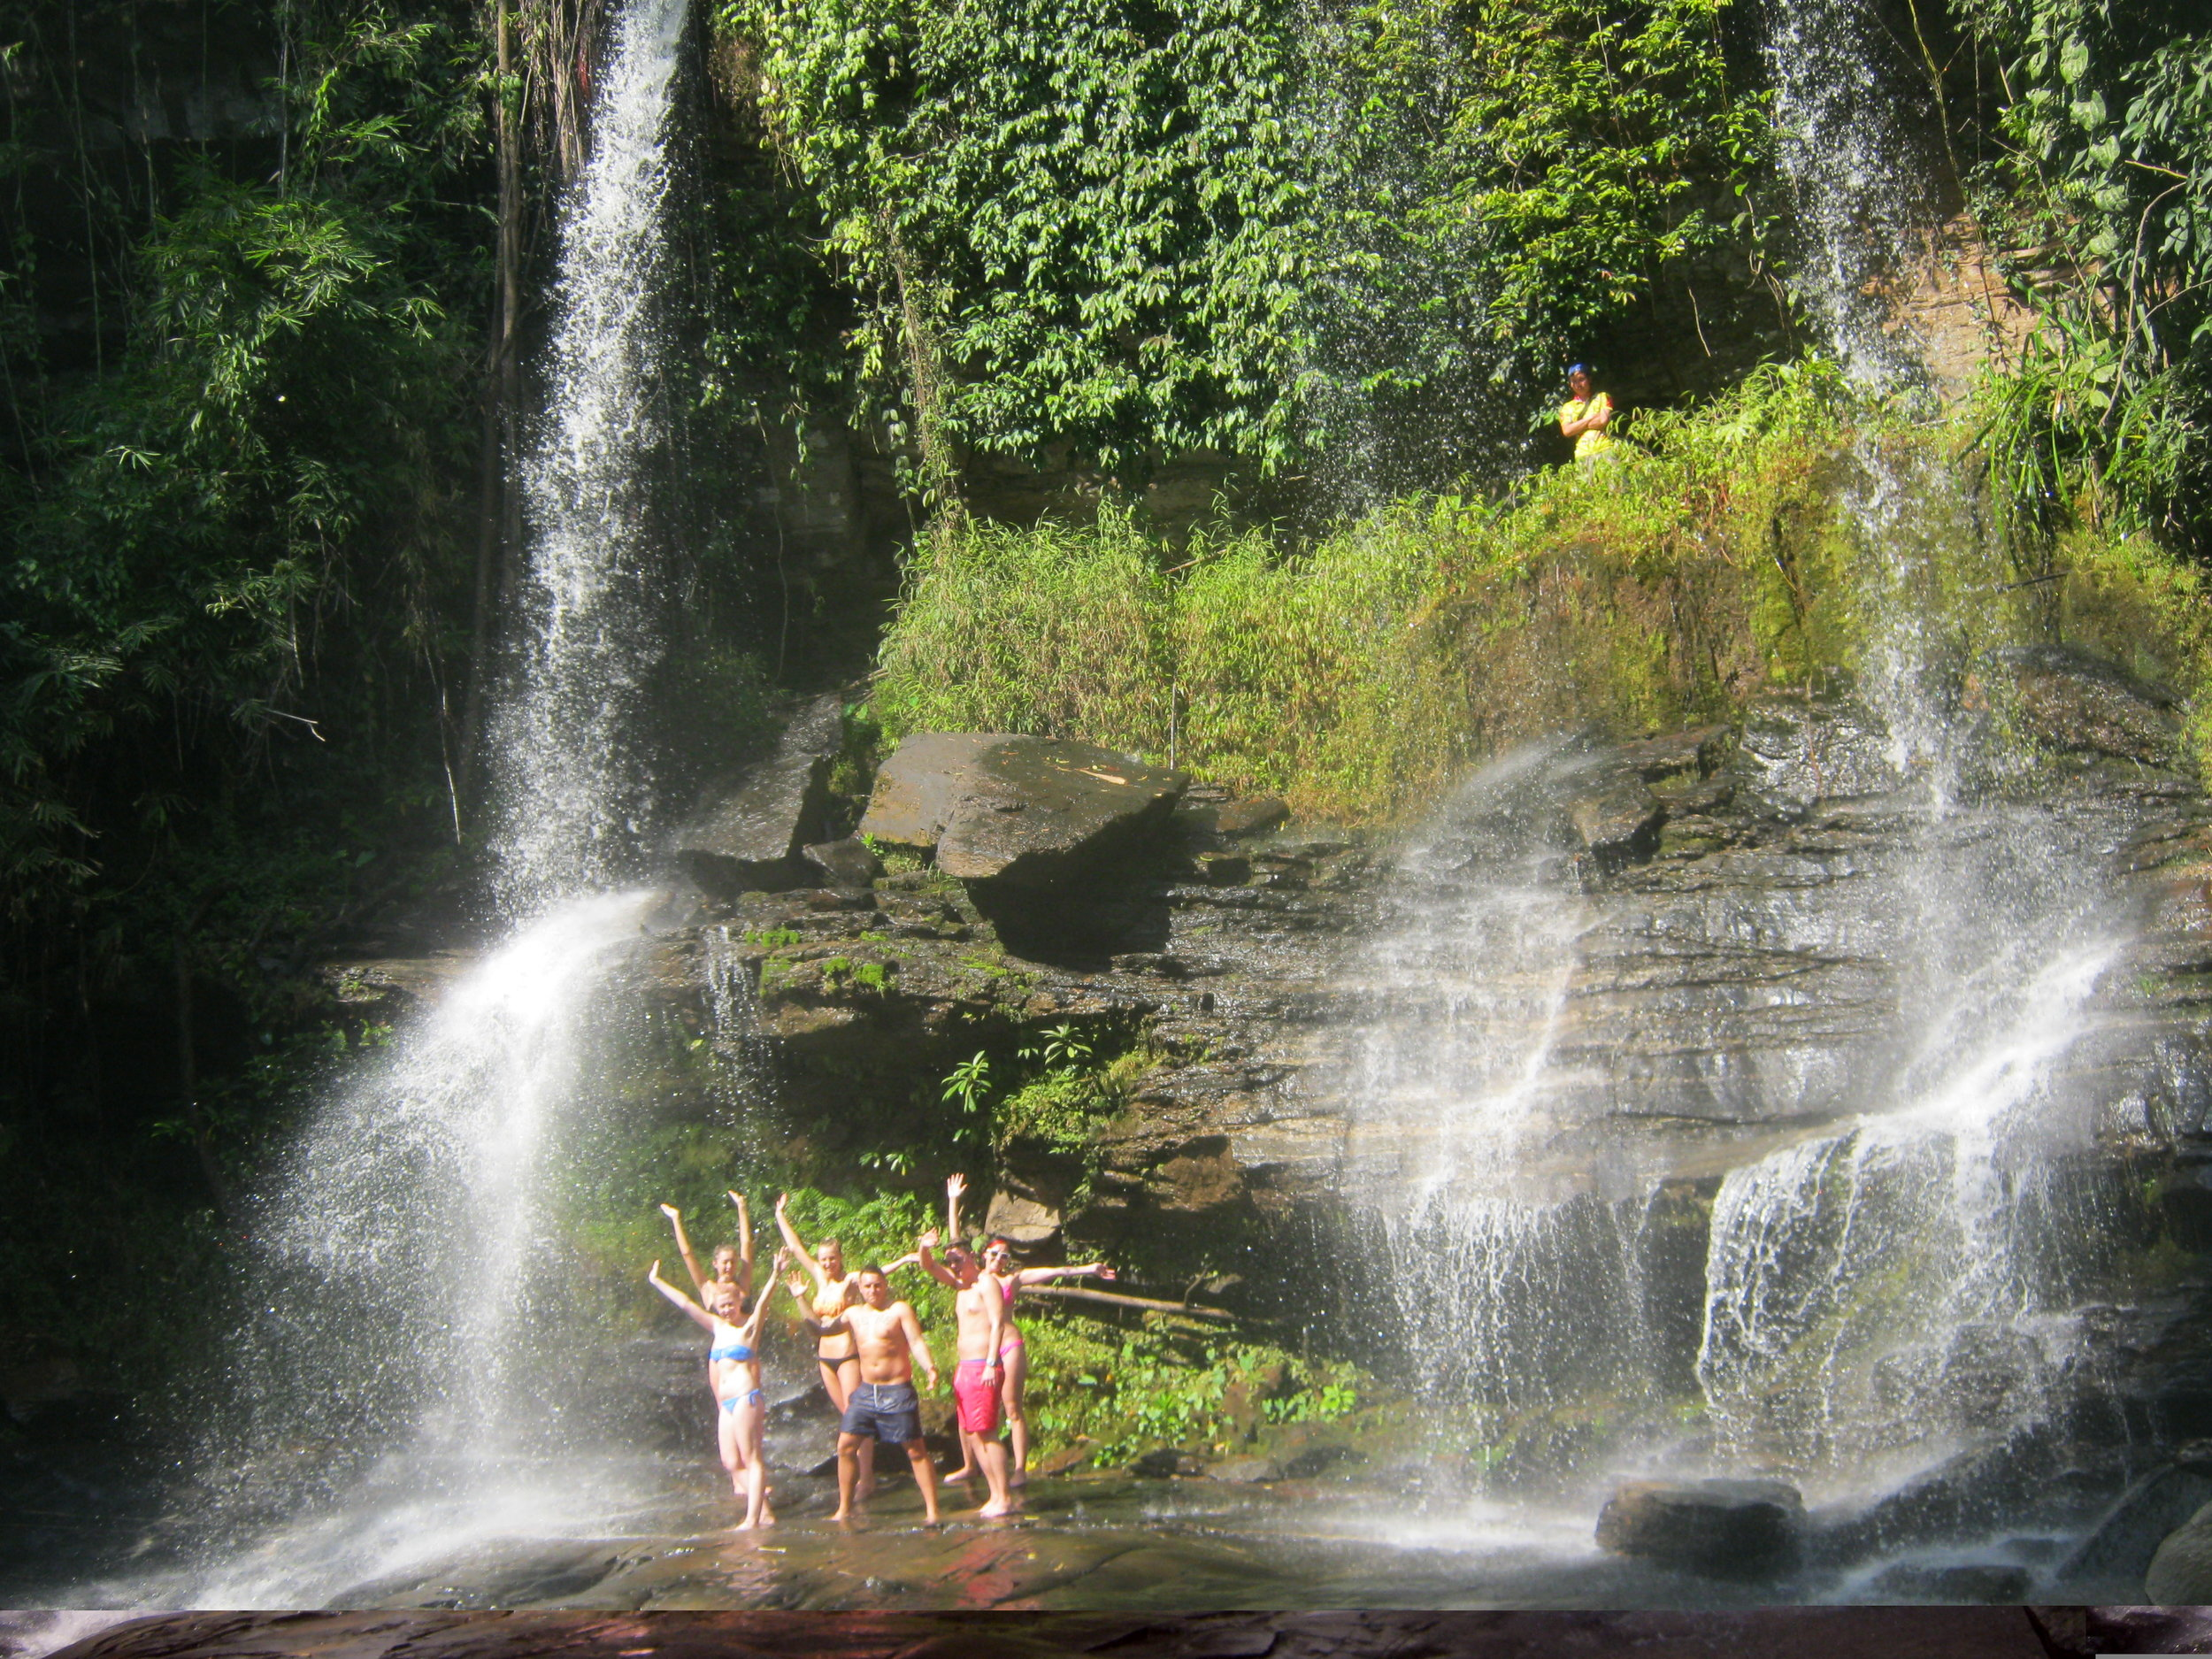 Chiang Mai - Exclusive Jungle trekking - Two days